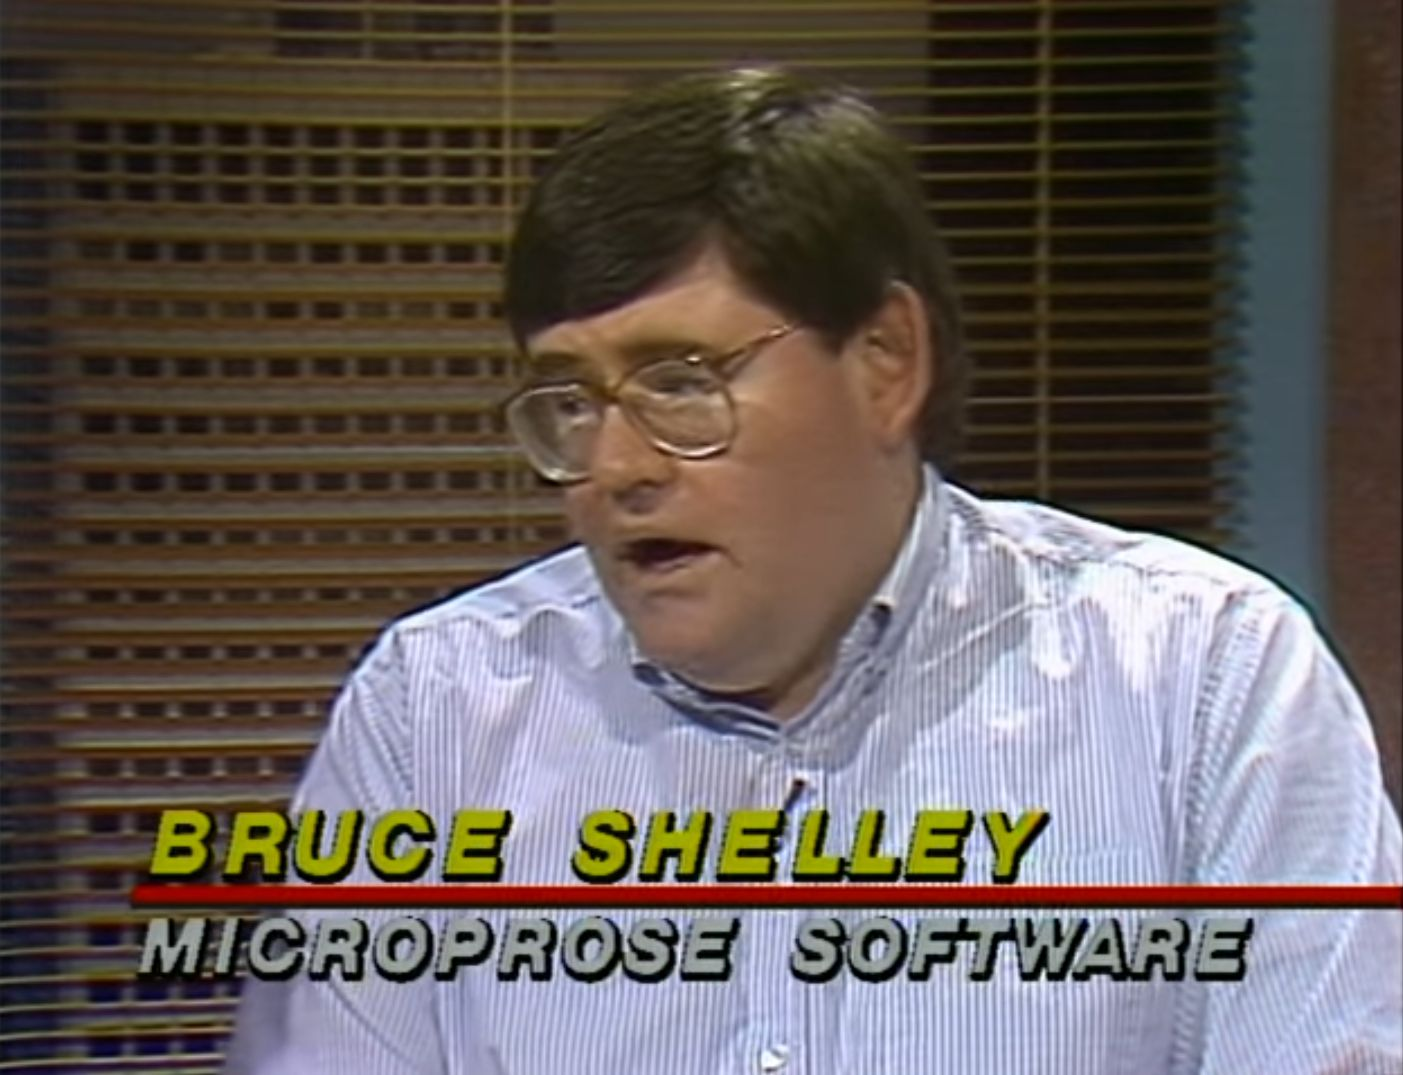 A shot of Bruce Shelley from a popular computer program (as in, a TV program about computers) that focused on games.